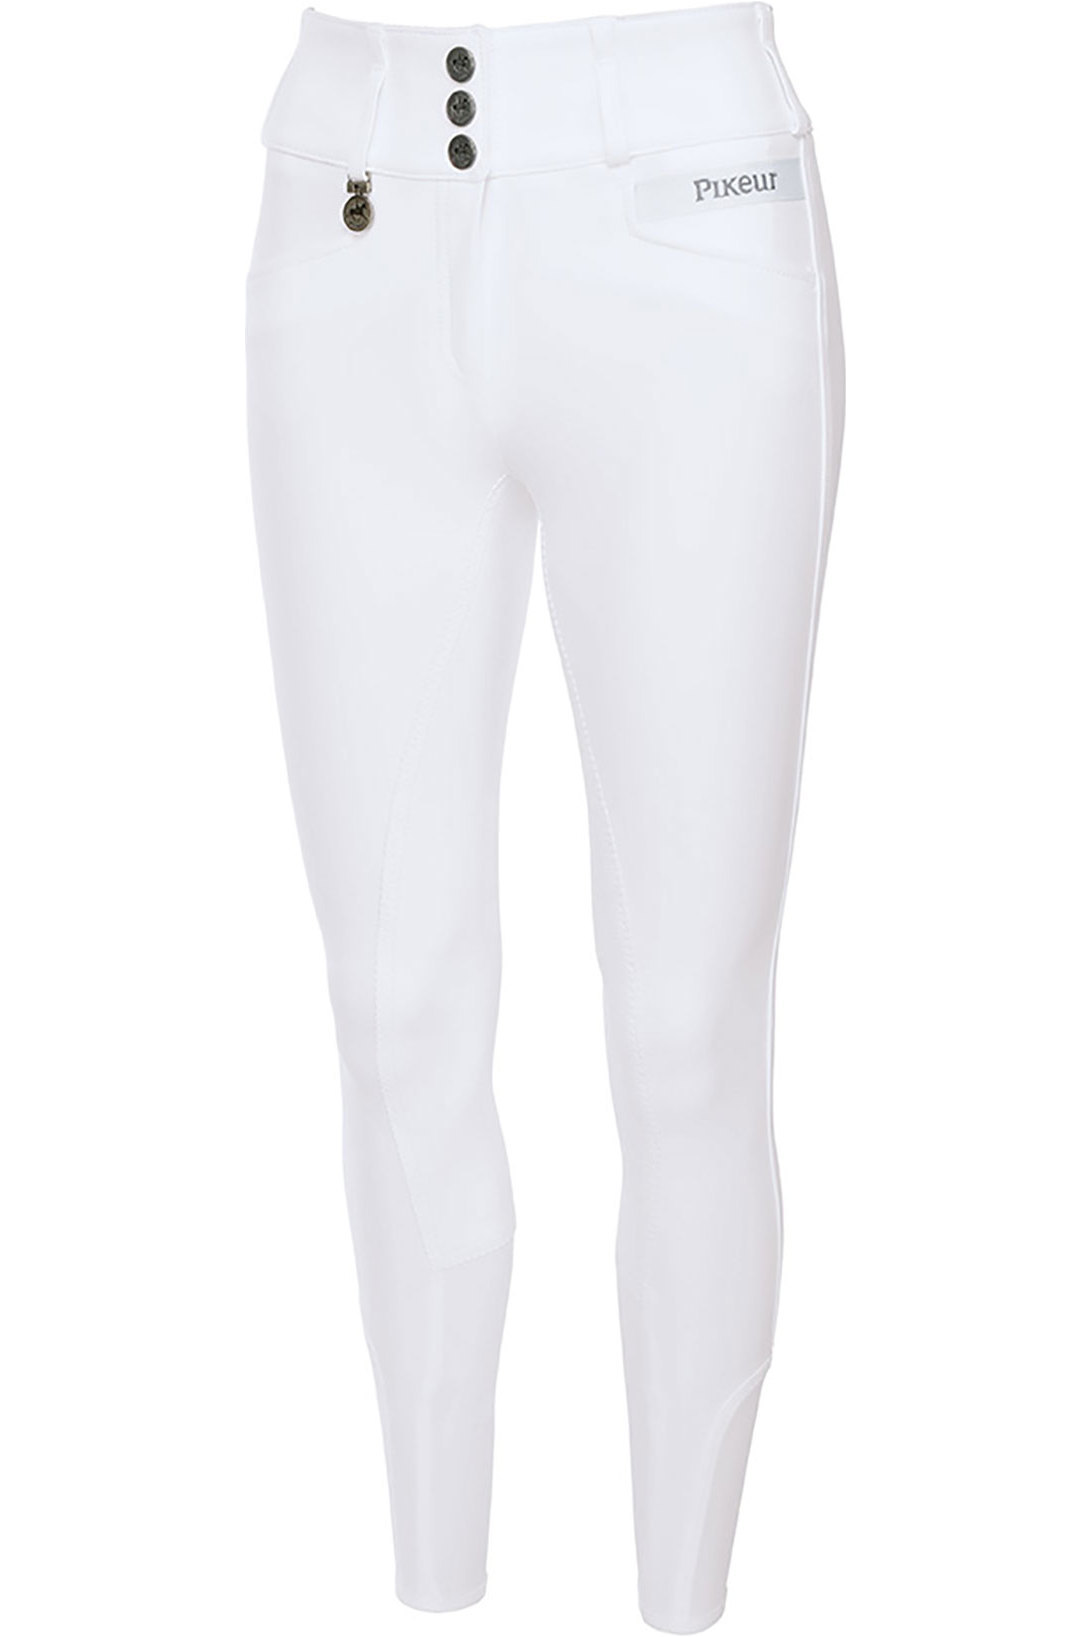 Pikeur Womens Candela Grip Breeches White